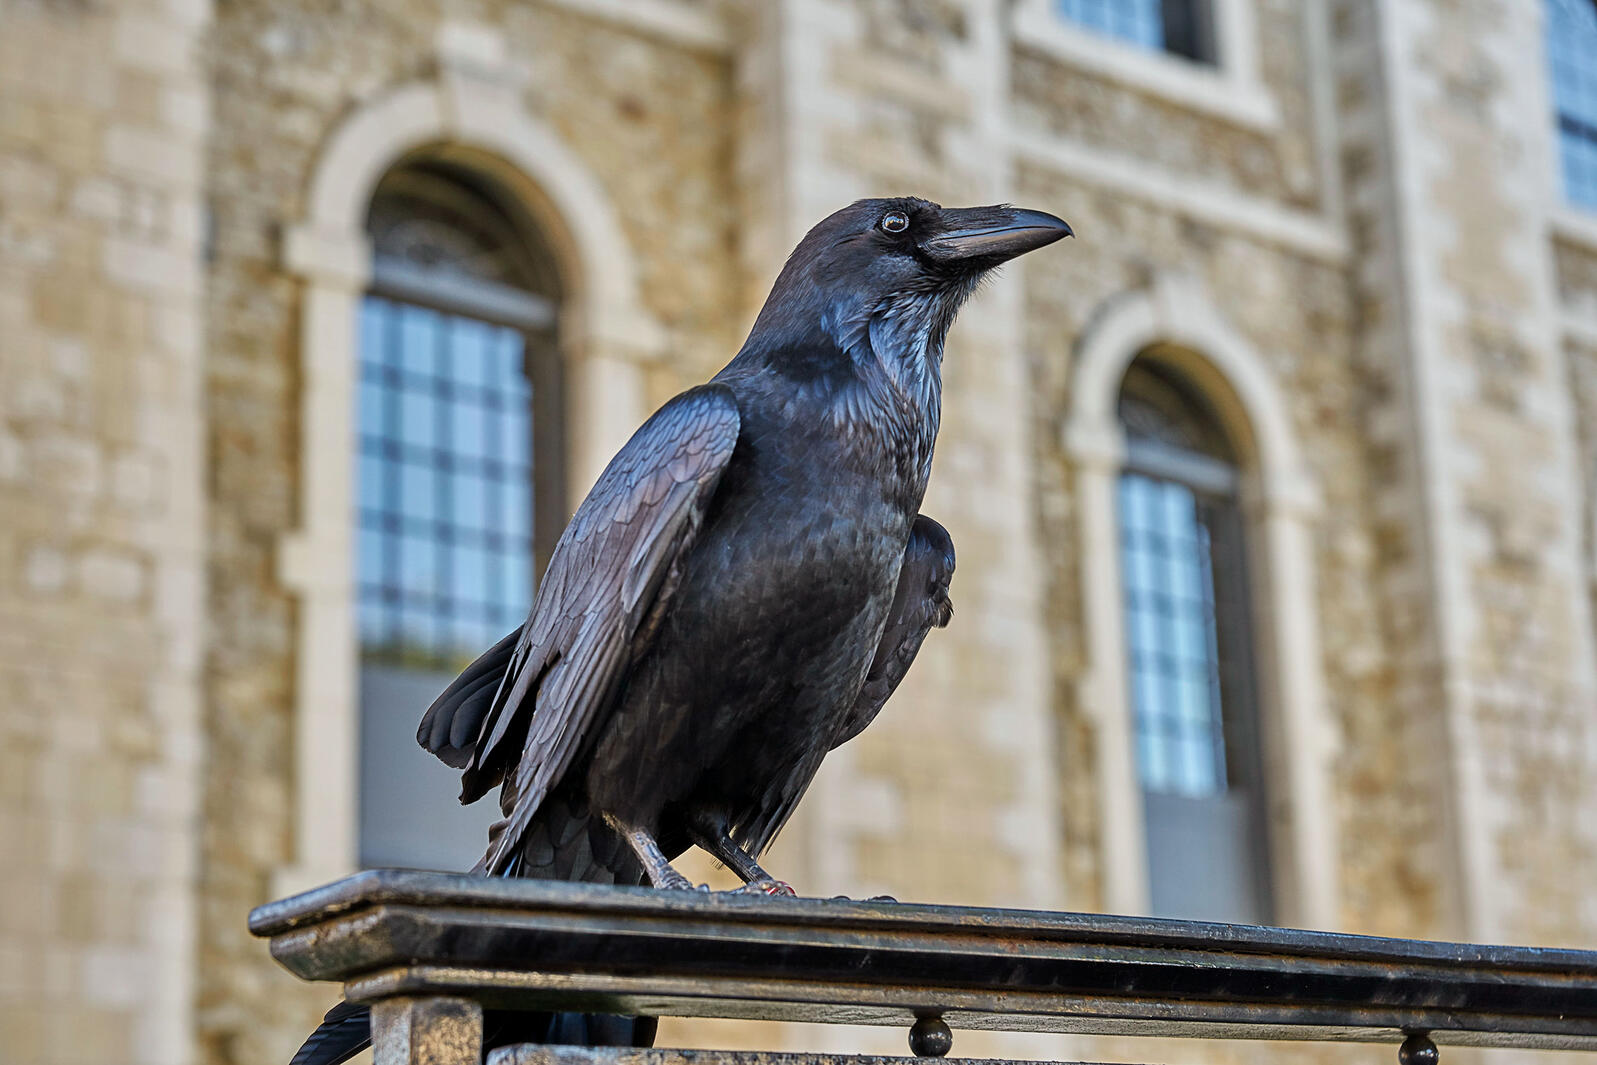 One of the Tower of London's seven Common Raven residents. Marc Zakian/Alamy